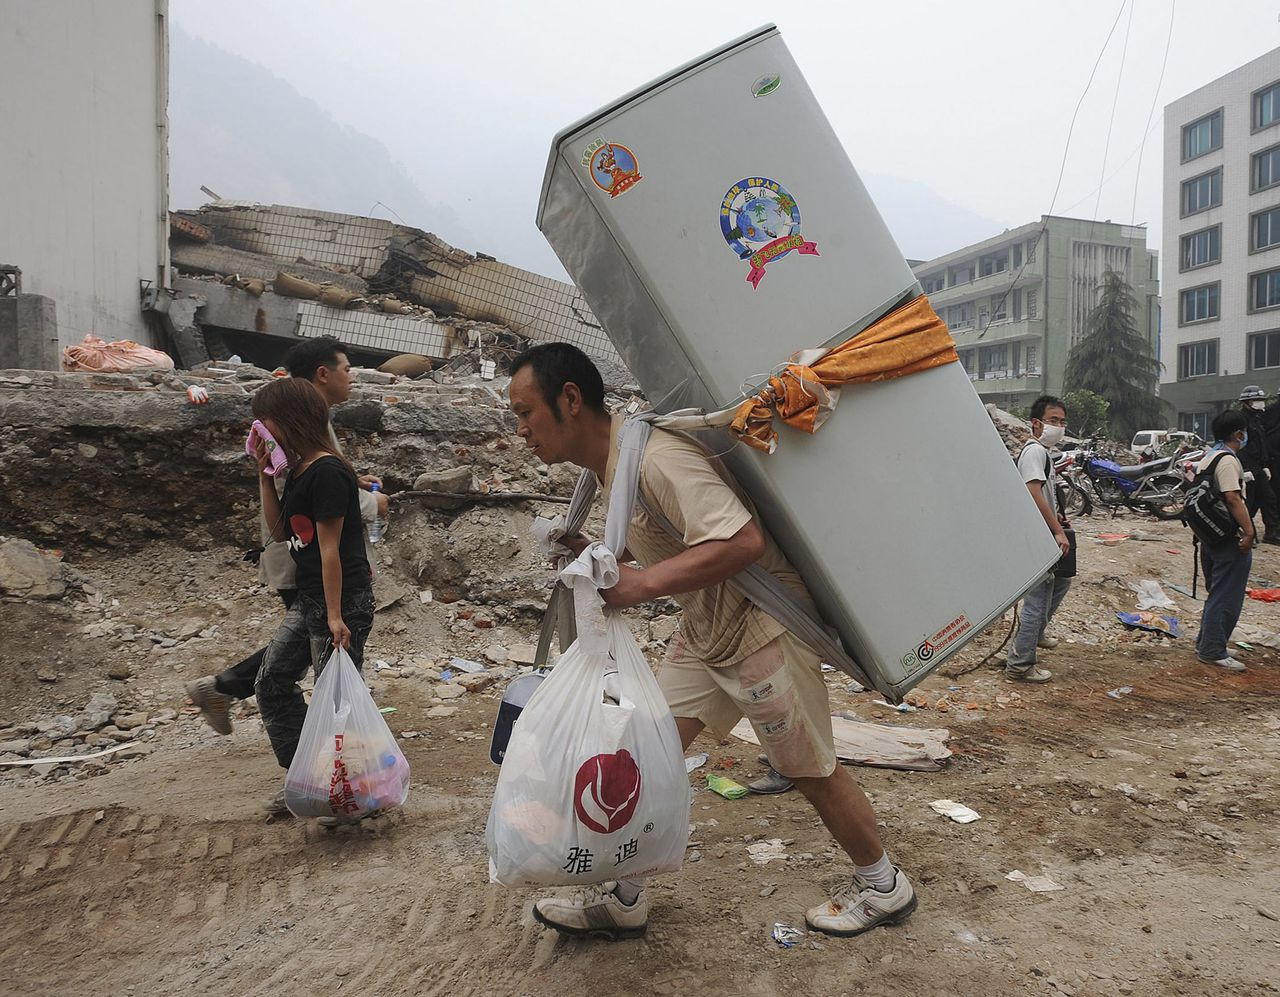 Overlevers van de aardbeving in China lopen soms dagen met hun bezittingen op hun rug. Foto Reuters An earthquake survivor carries a refrigerator on his back in Beichuan, Sichuan province May 17, 2008. Picture taken May 17, 2008. REUTERS/Jianan Yu (CHINA)